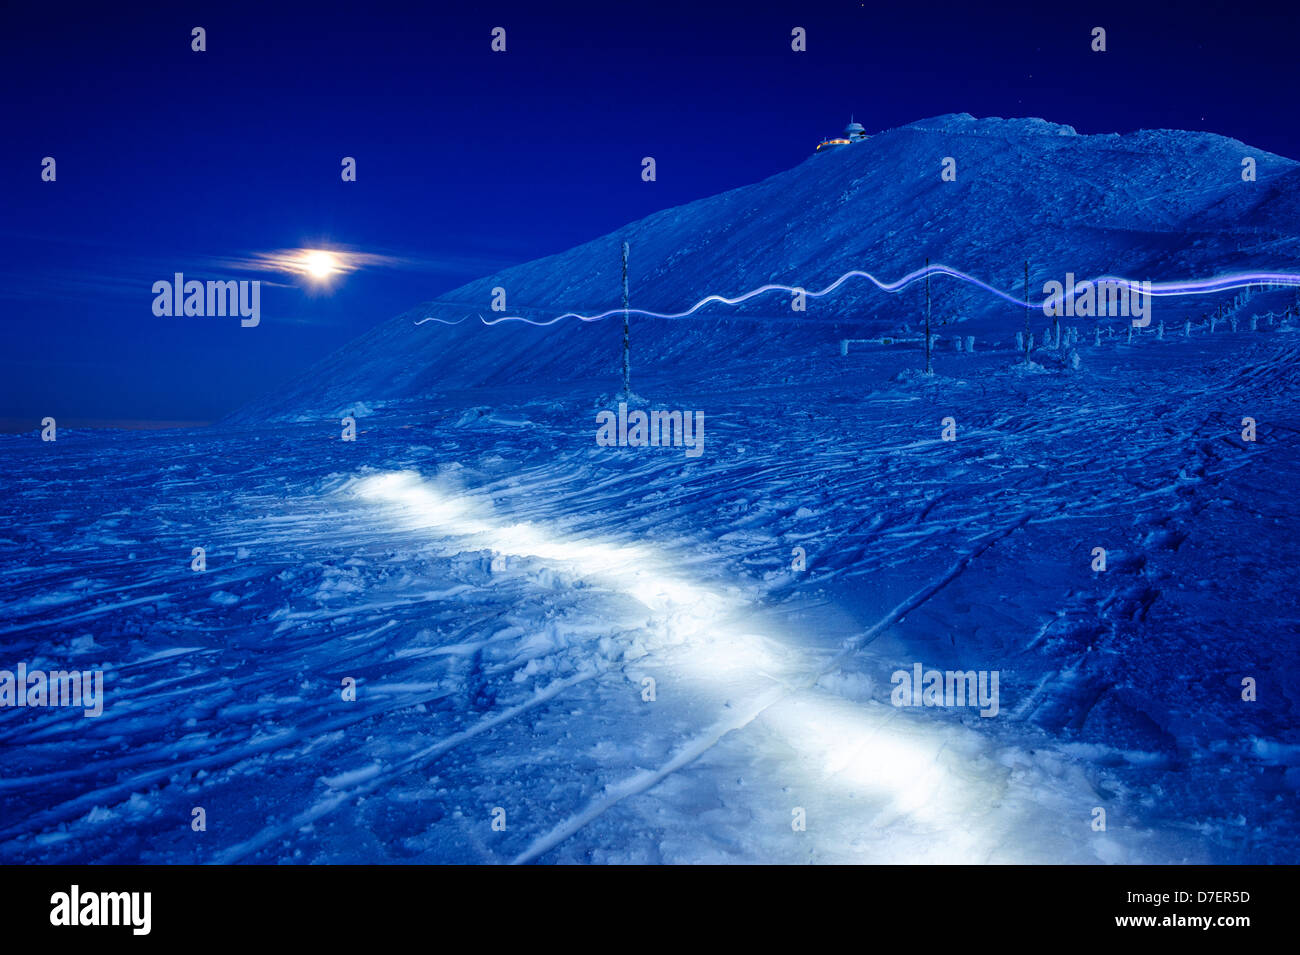 light painting in a snowed winter landscape at the Karkonosze mountains, Poland. - Stock Image